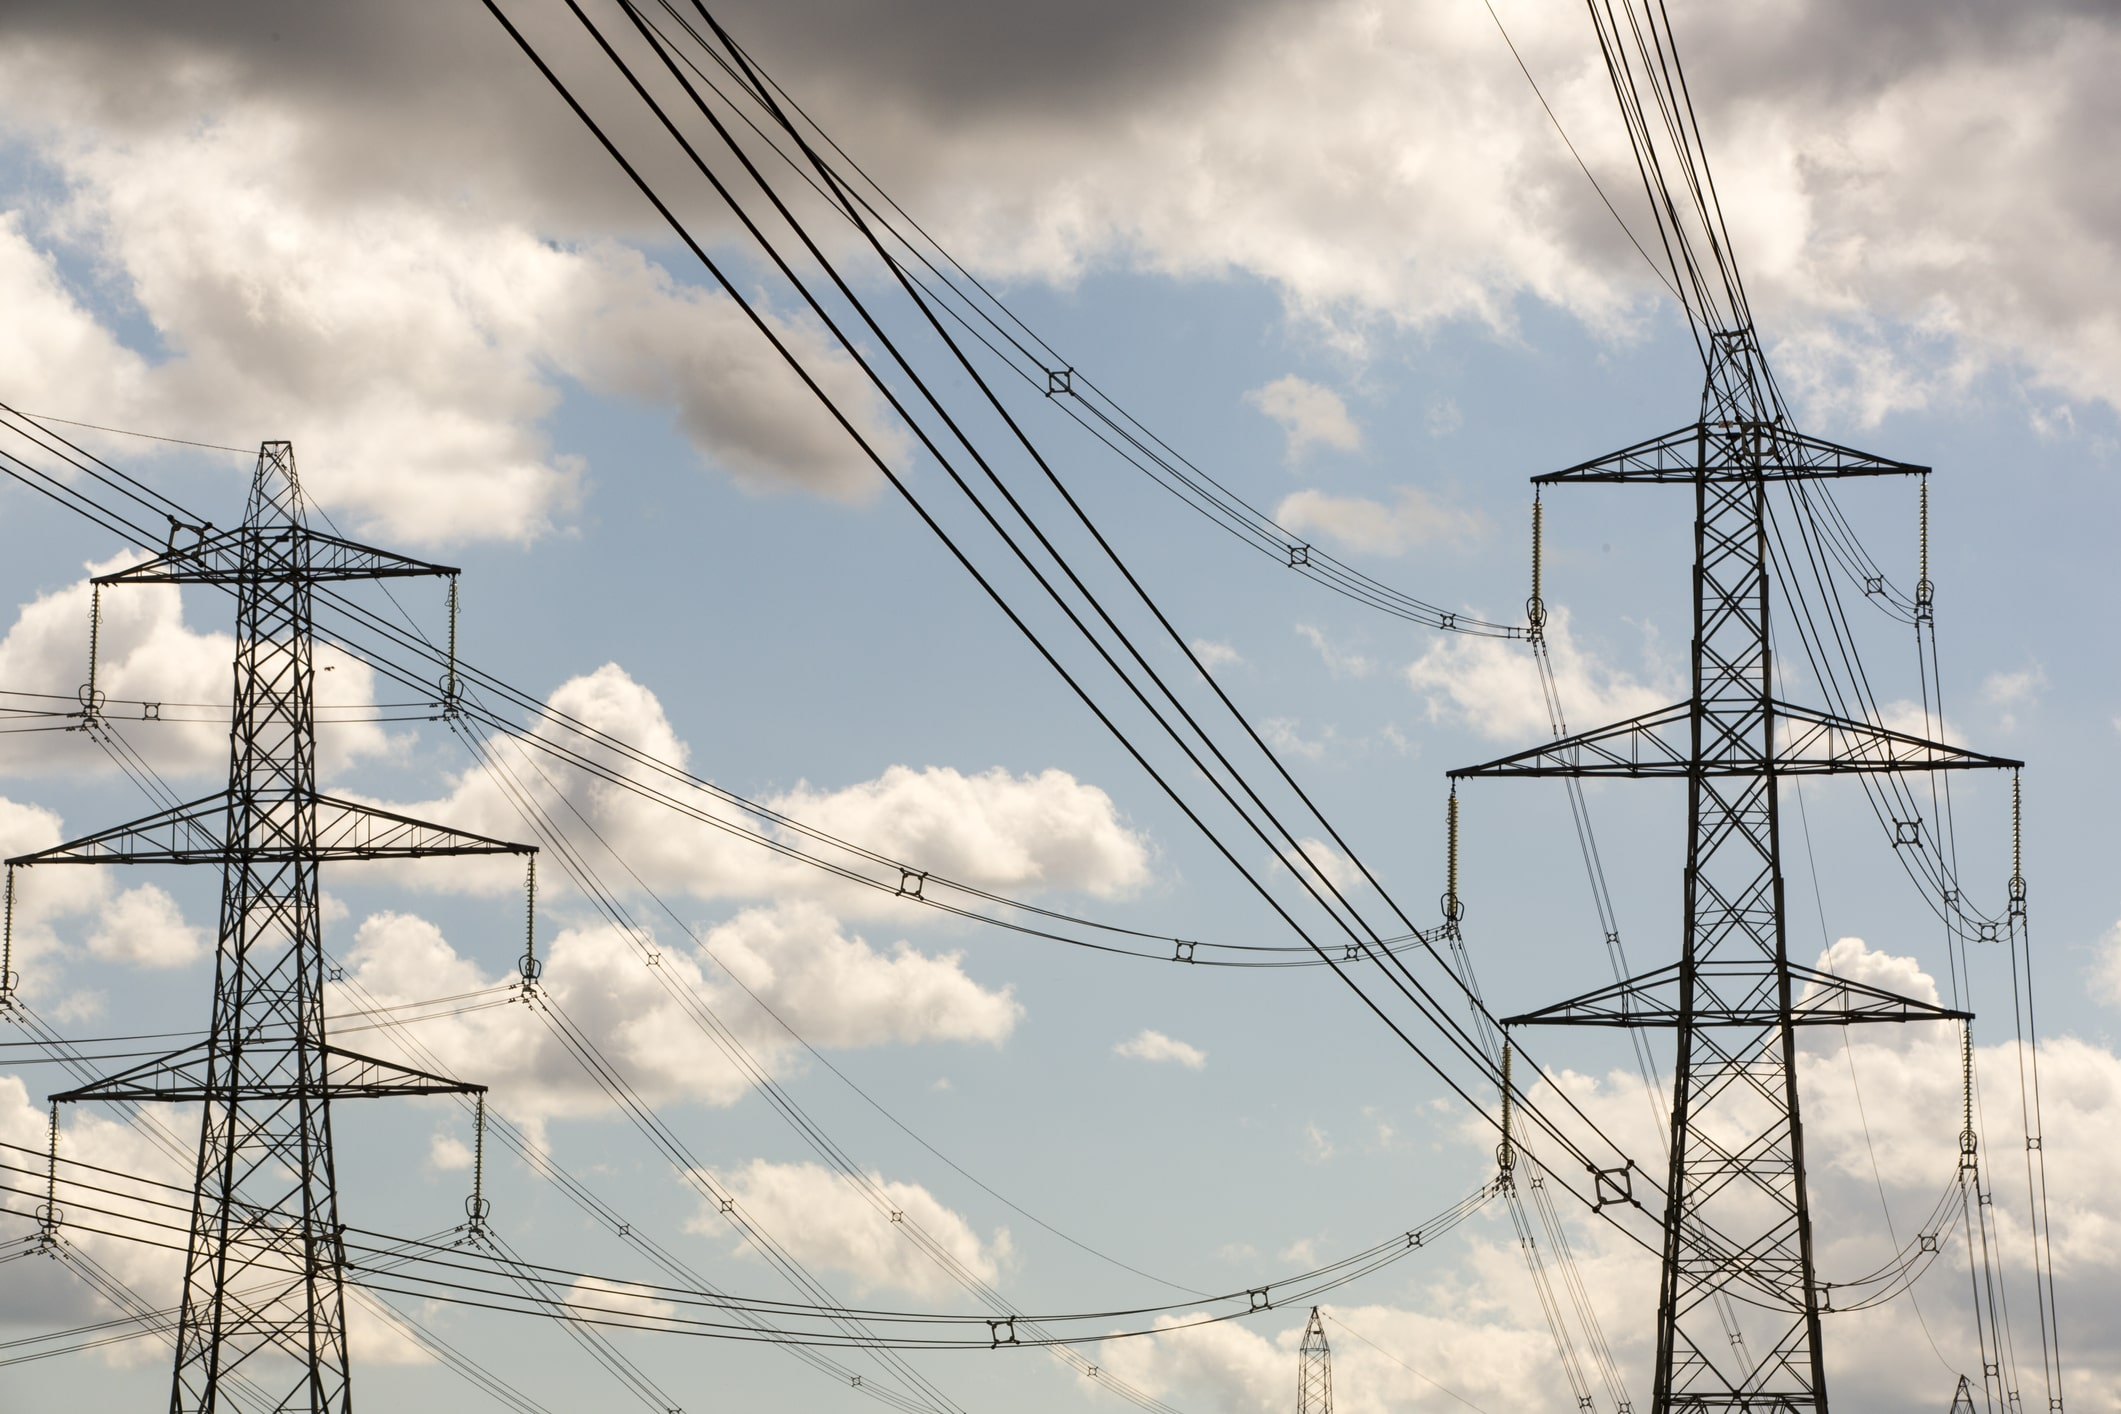 safe operation of cranes near power lines